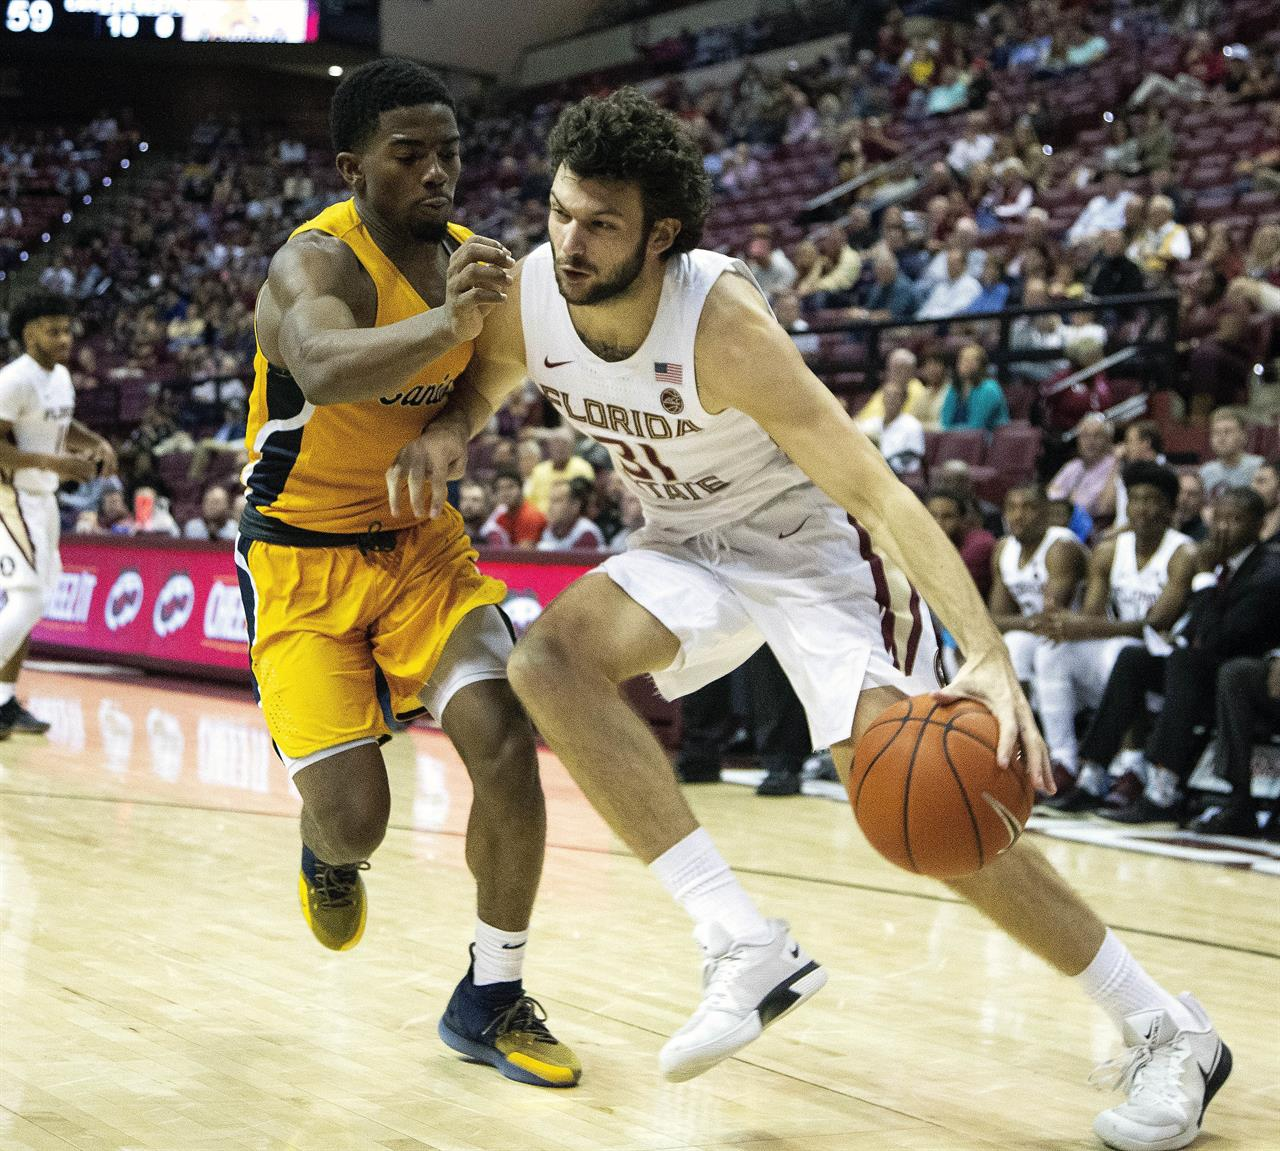 Kabengele scores 18 points as Florida State routs Canisius | AM 1070